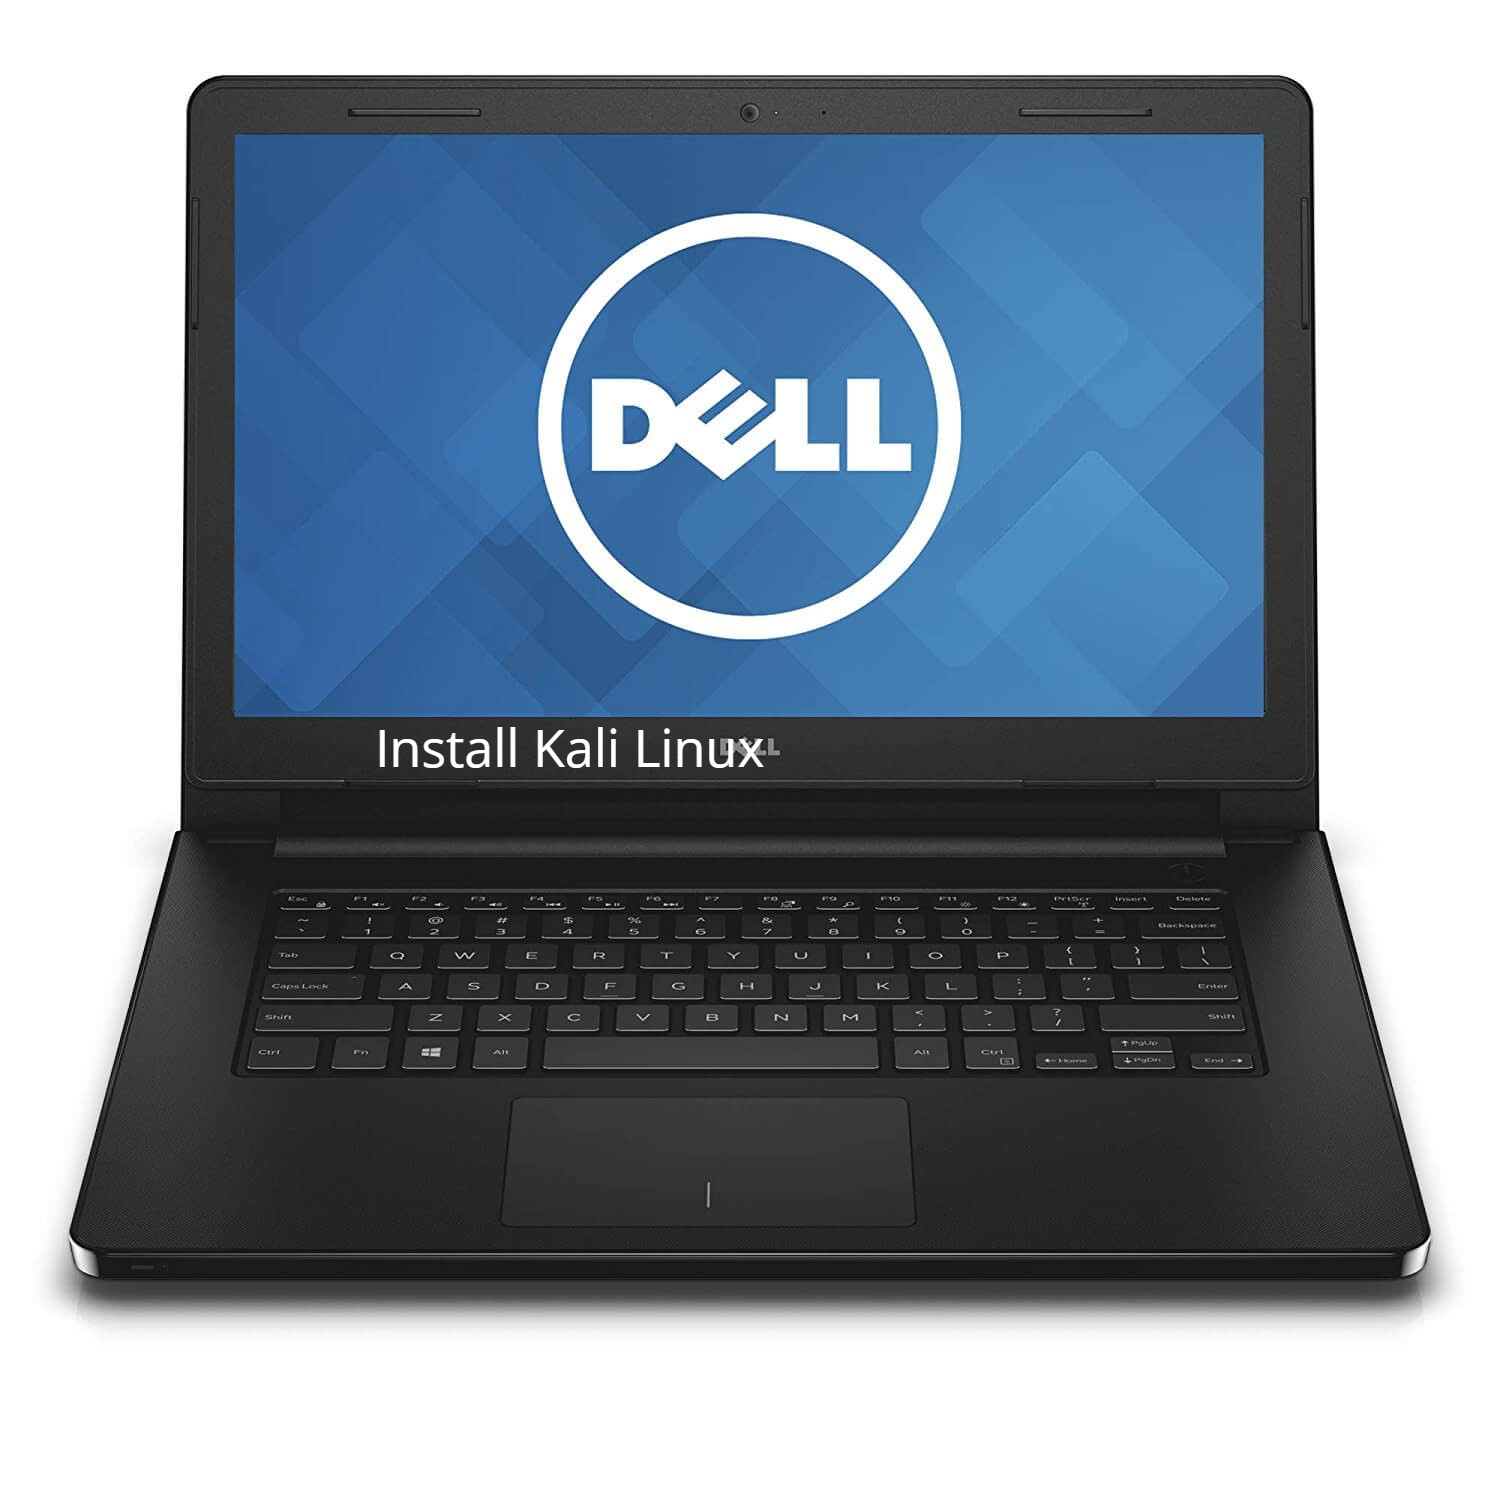 Dell Inspiron 3567 Kali Linux